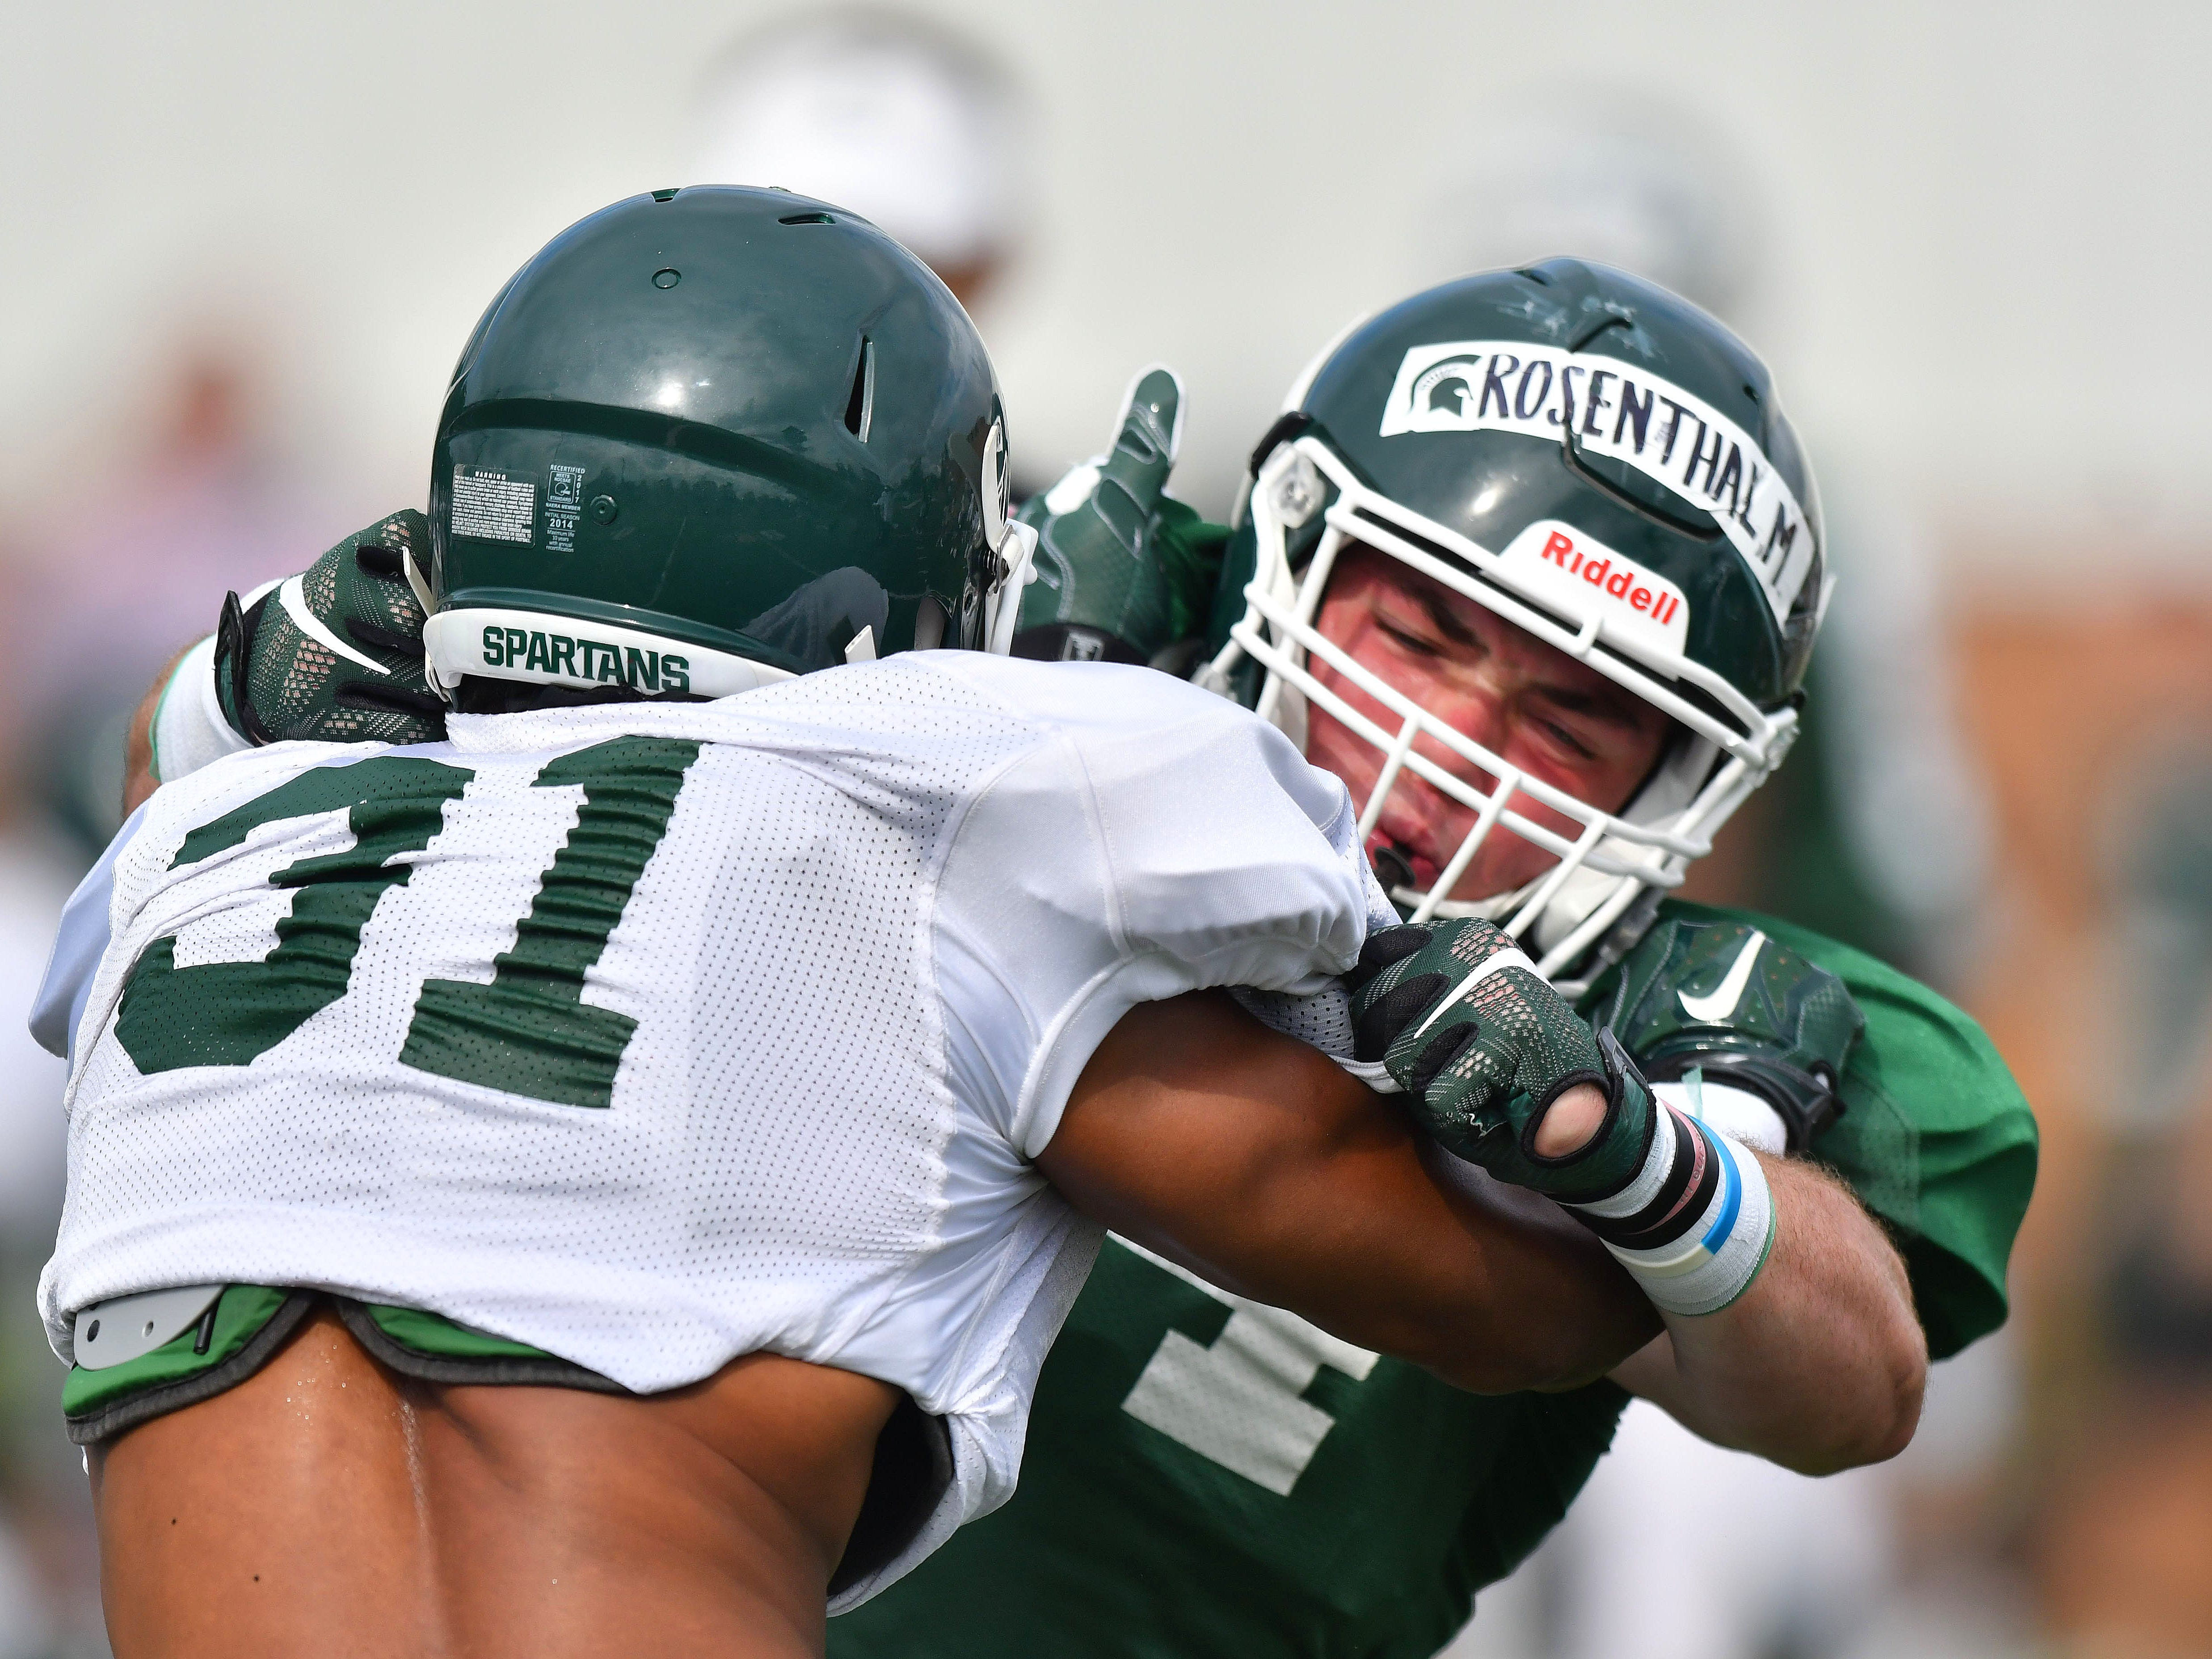 FULLBACK: Max Rosenthal – The Spartans use multiple-receiver sets more often than a fullback, but Rosenthal showed late last season he will be the main fullback moving forward after scoring his first career touchdown as a redshirt freshman.